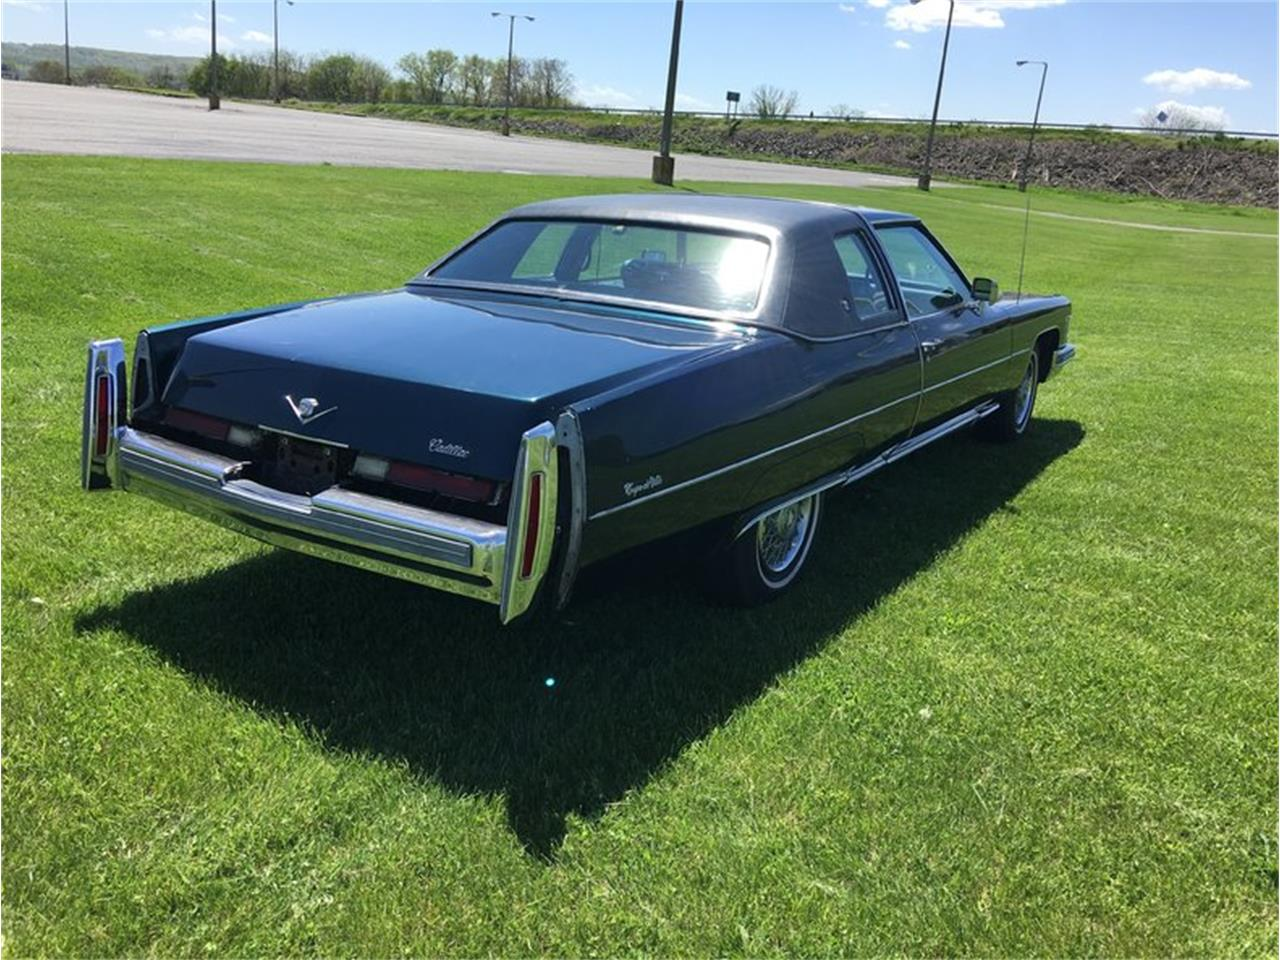 Large Picture of '76 Cadillac Coupe DeVille - $8,995.00 - L6UU